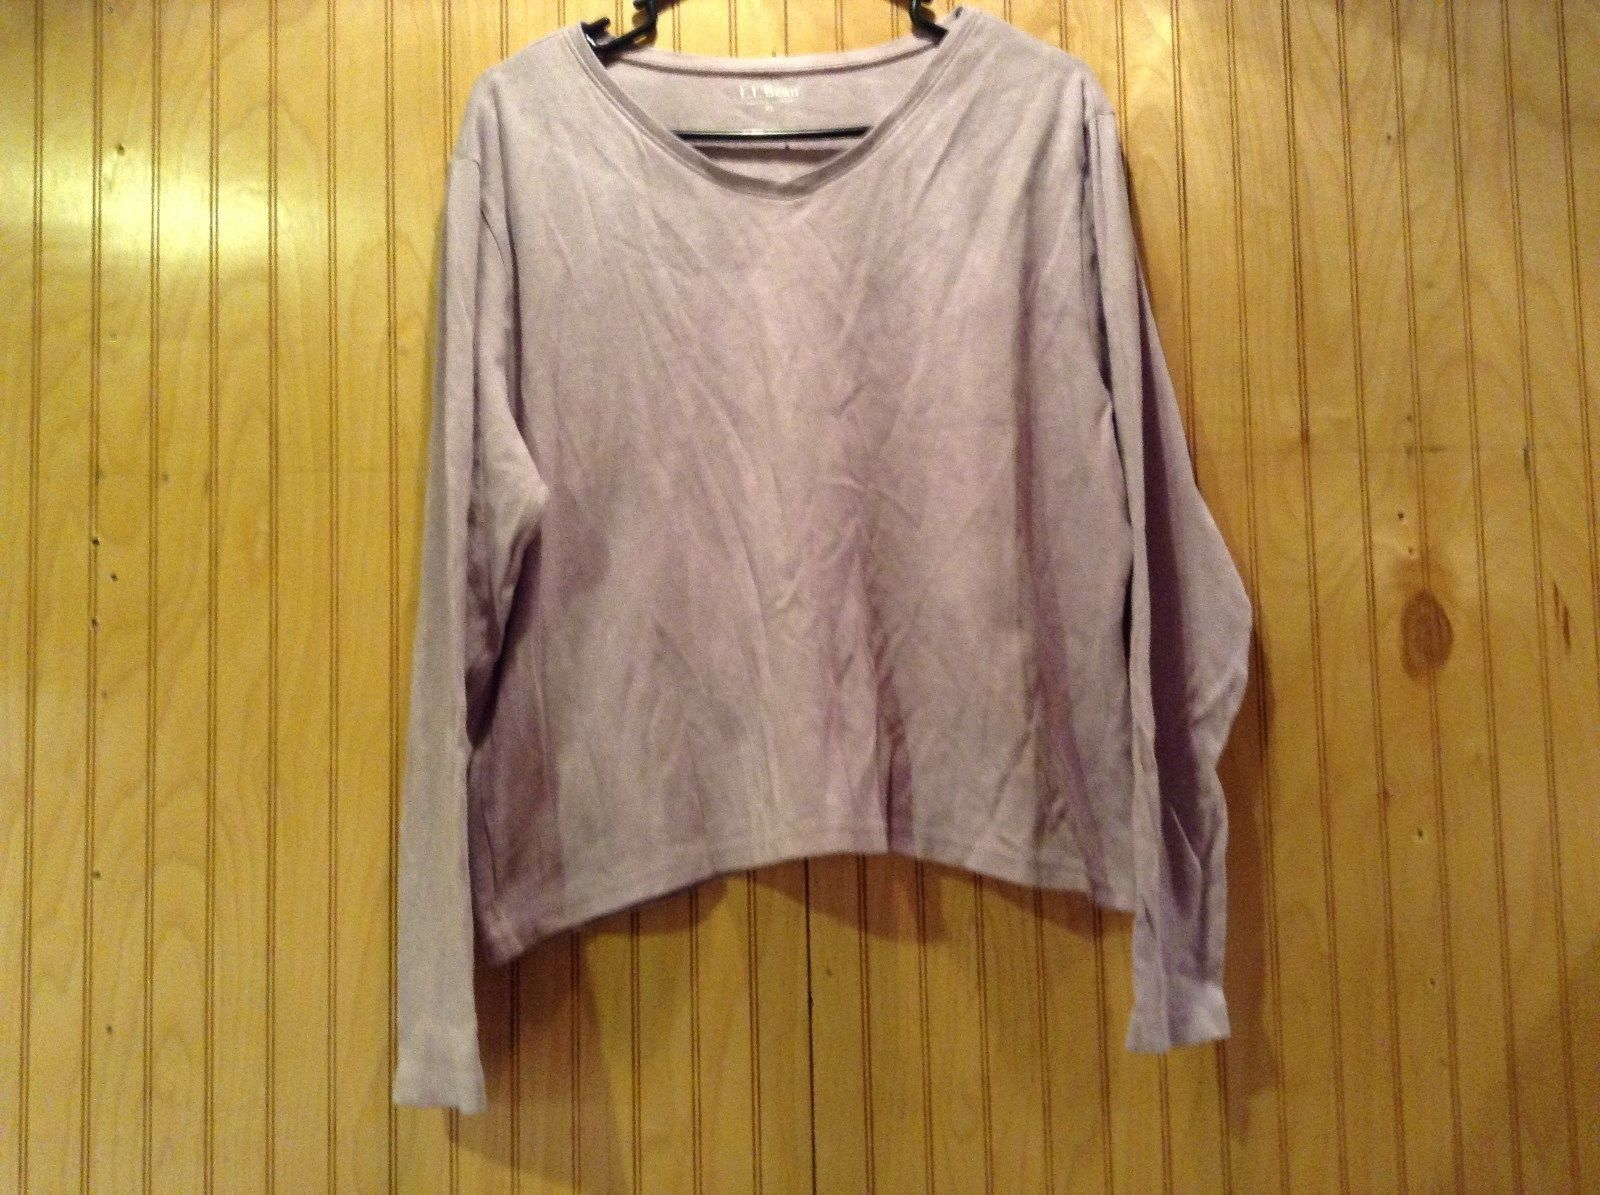 L L Bean Size XL Light Lavender Long Sleeve V Neck Shirt